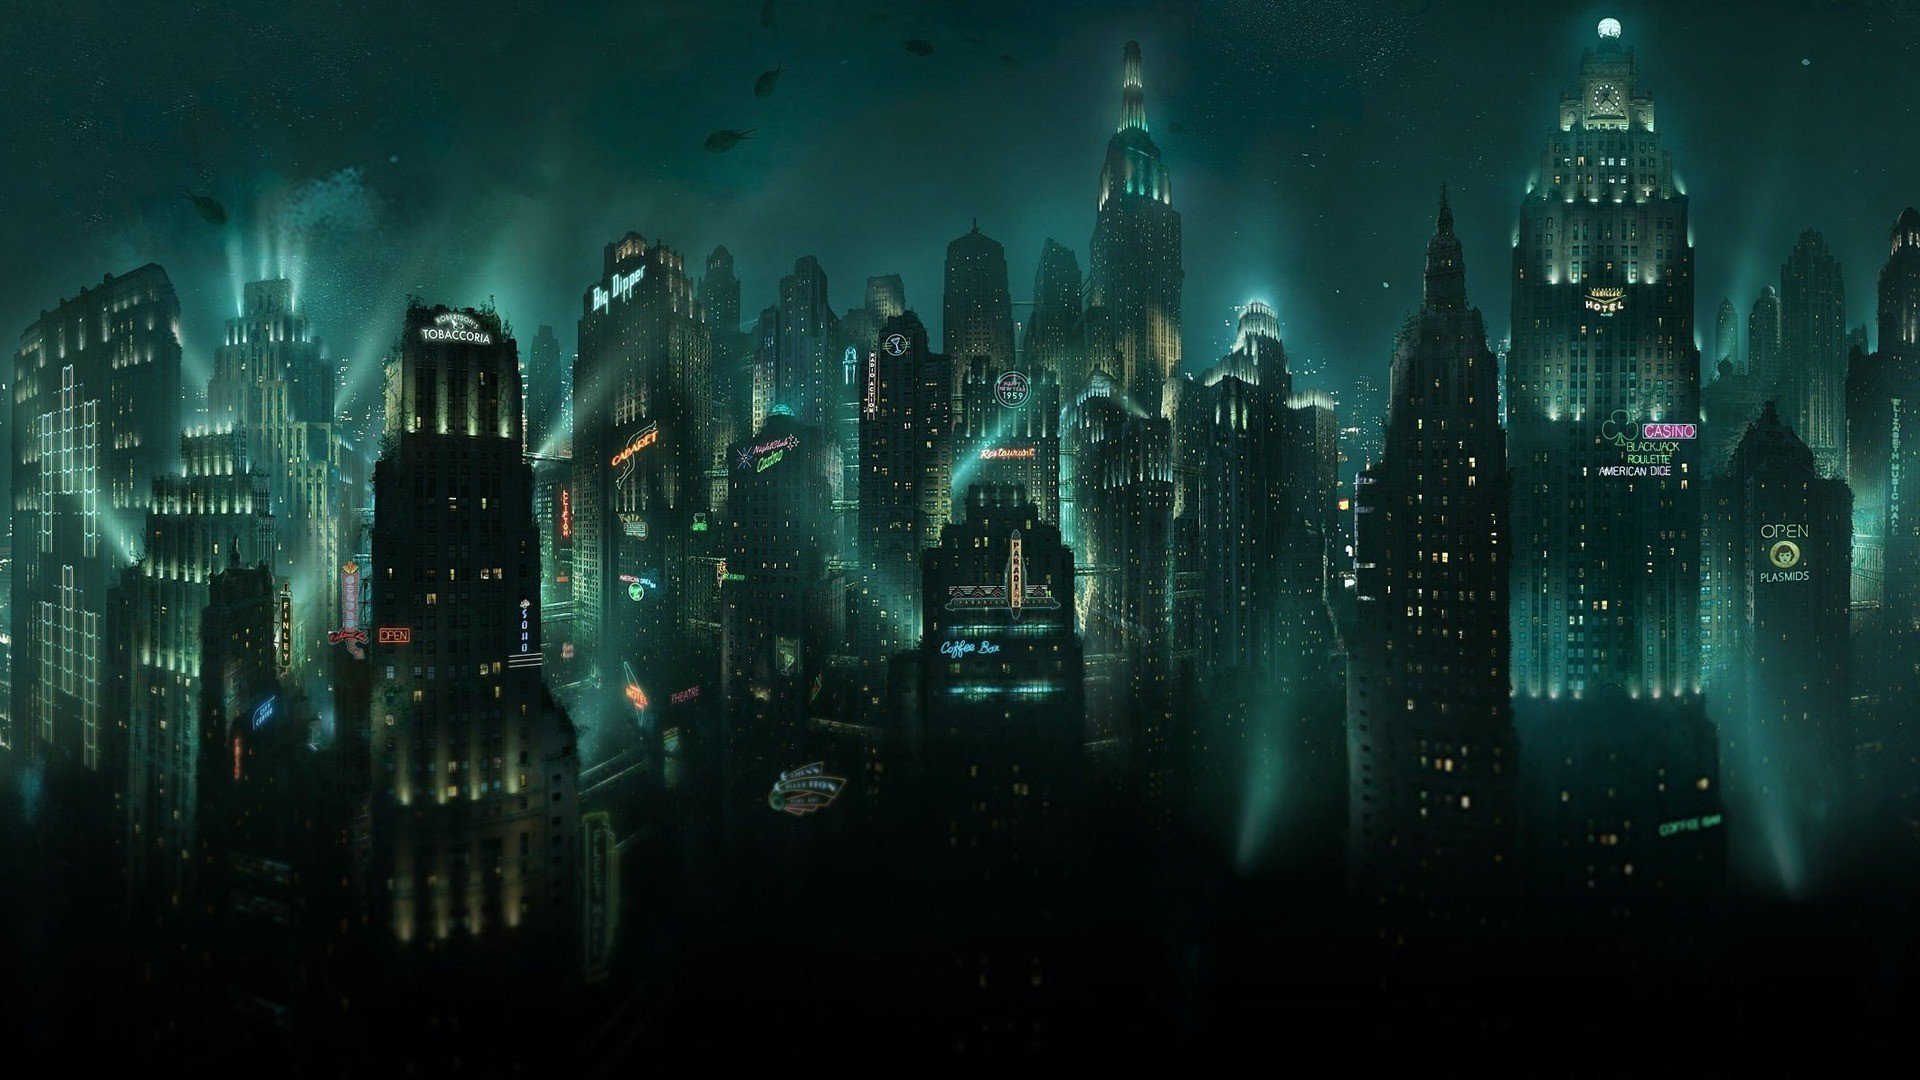 dark bioshock night towns HD Wallpaper